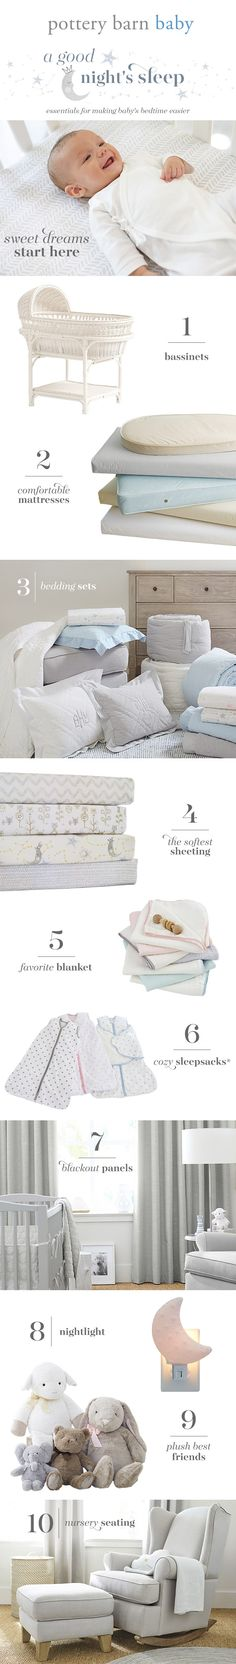 We get it, sometimes it's hard to get your little one to sleep. Here are a few essentials, from supersoft bedding to blackout panels, that make sound sleep just a bit easier.